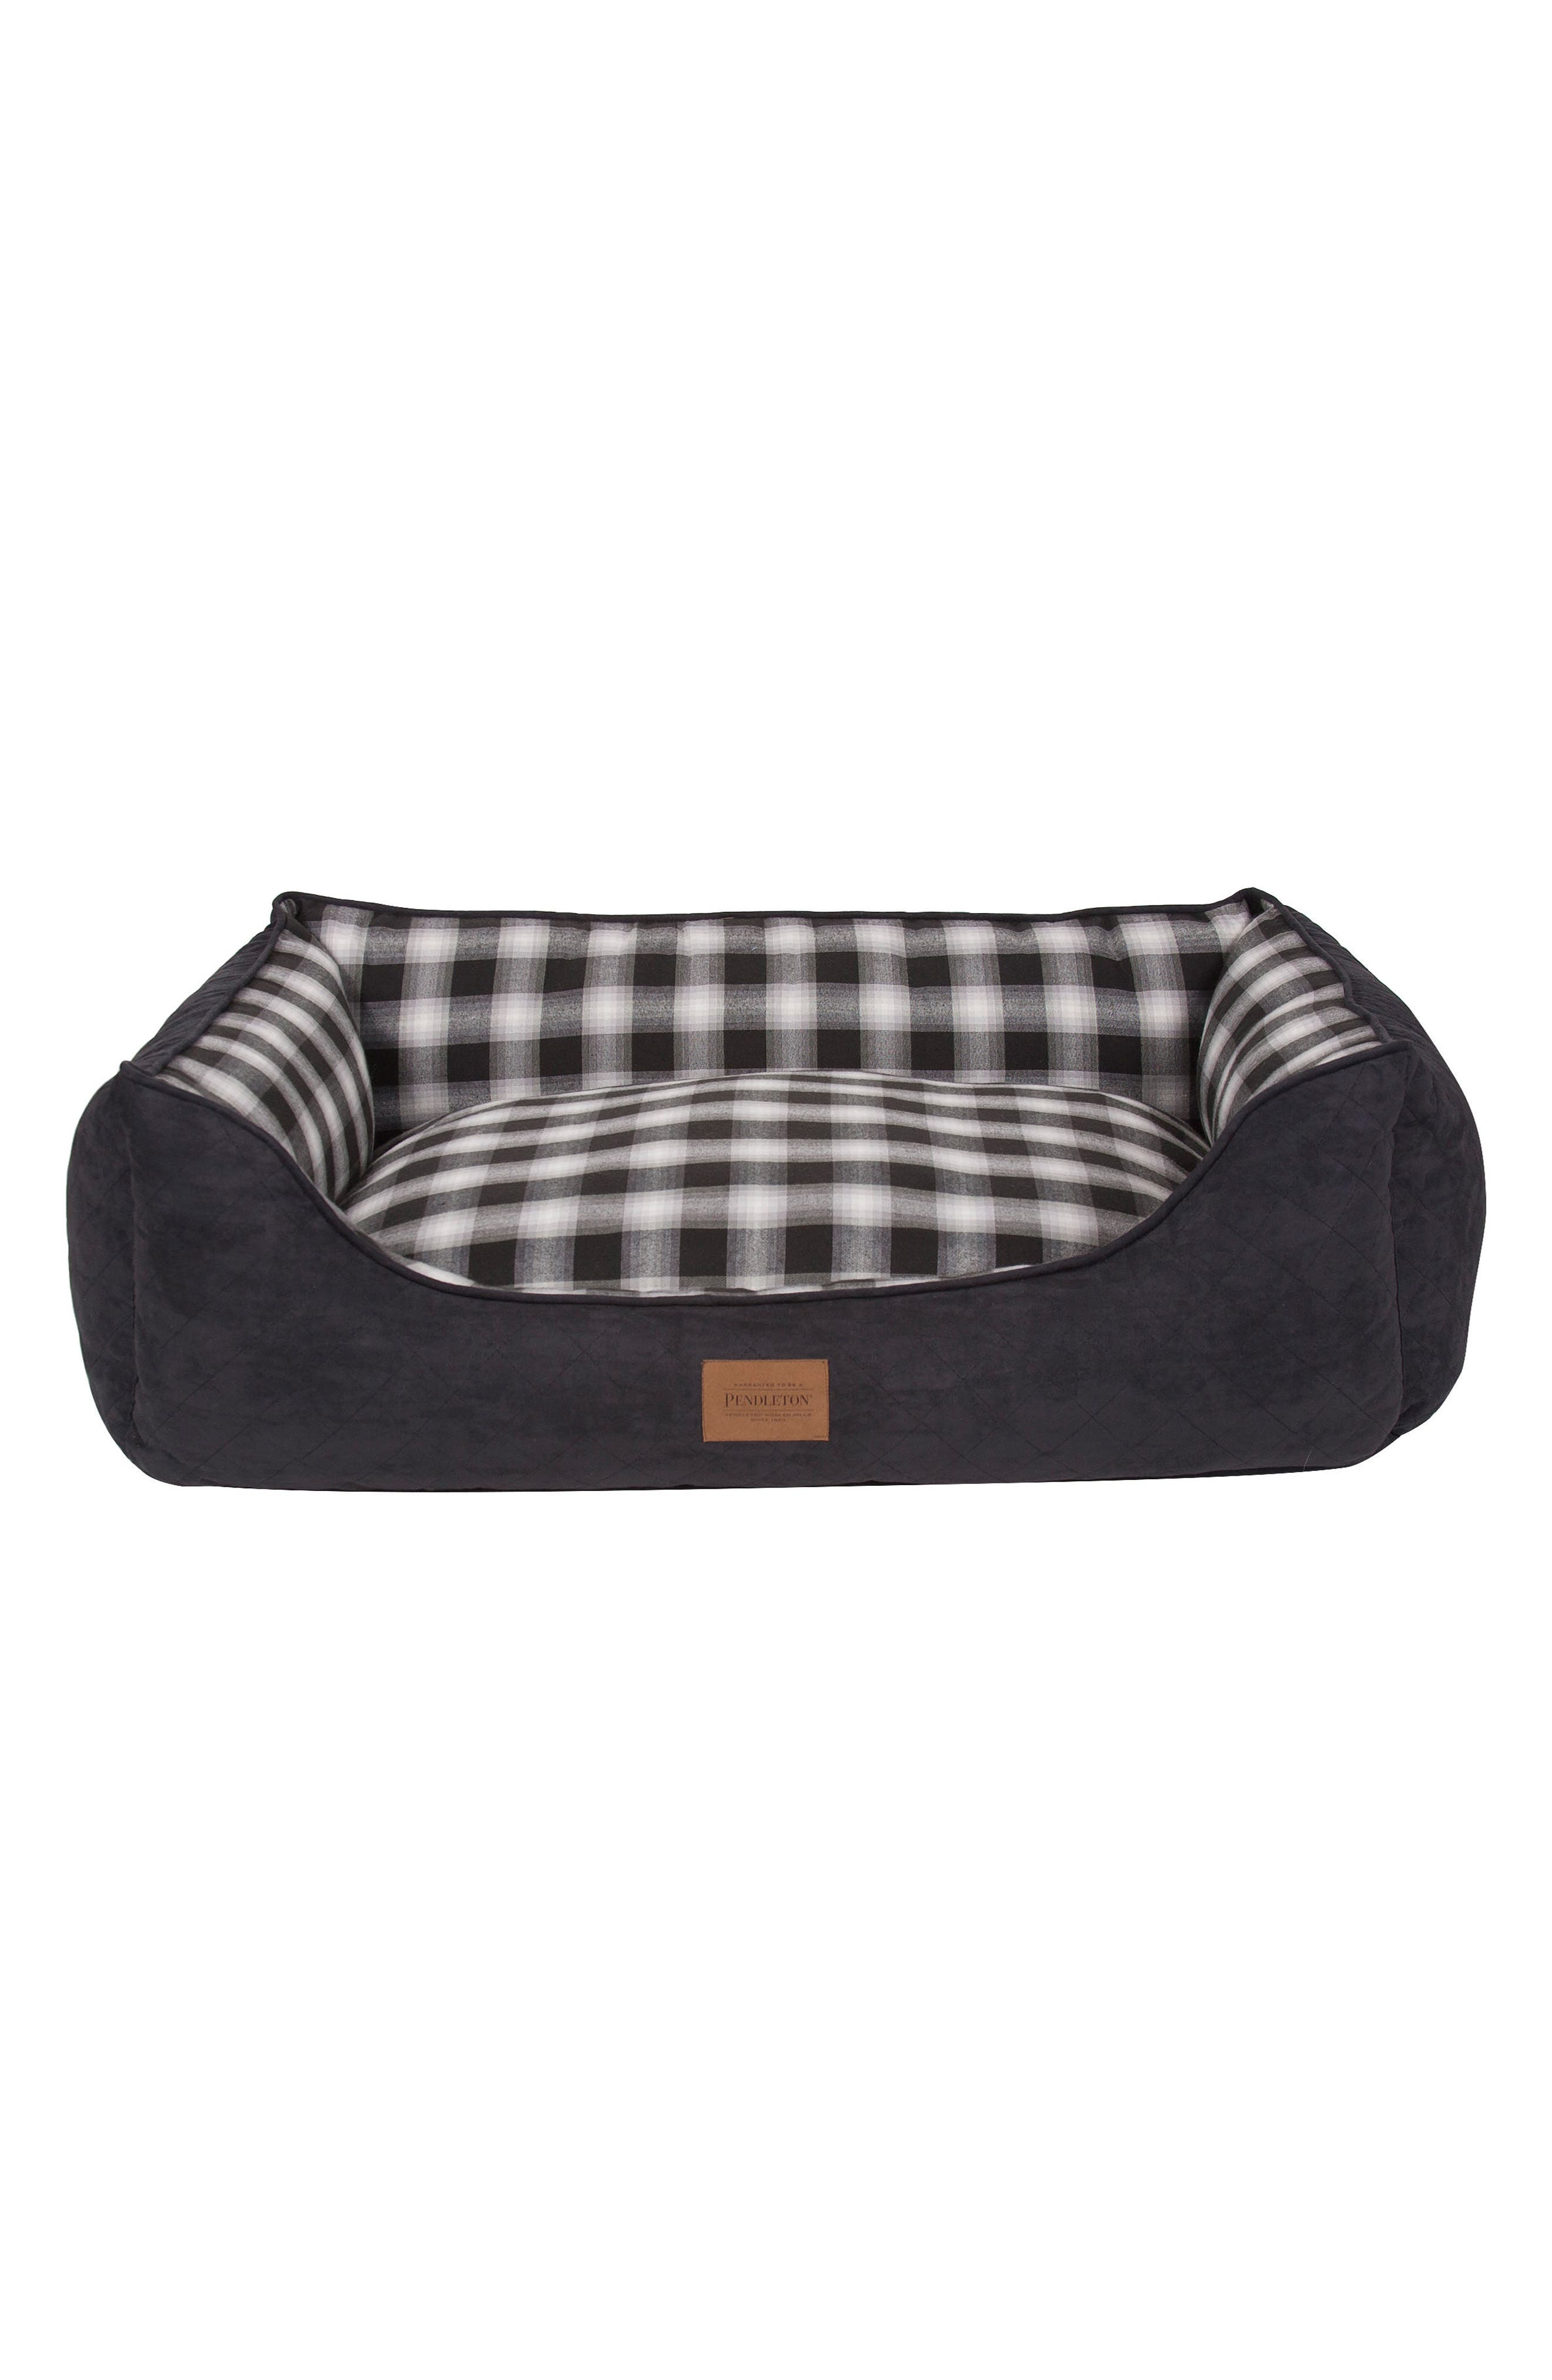 x Pendleton Classics Kuddler Pet Bed,                             Main thumbnail 1, color,                             CHARCOAL OMBRE